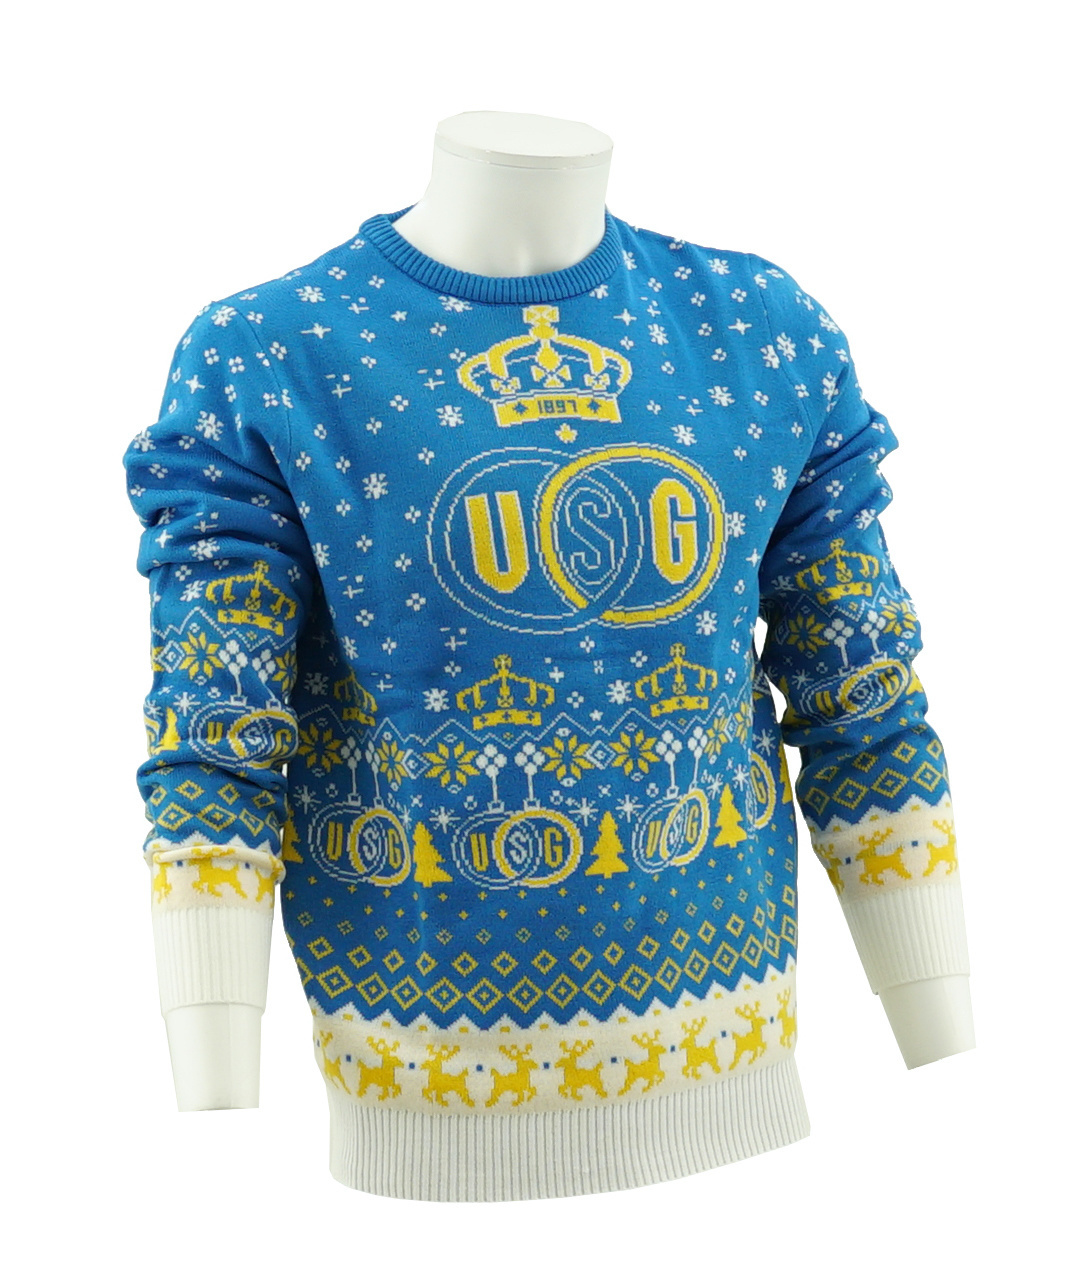 Topfanz Christmas sweater